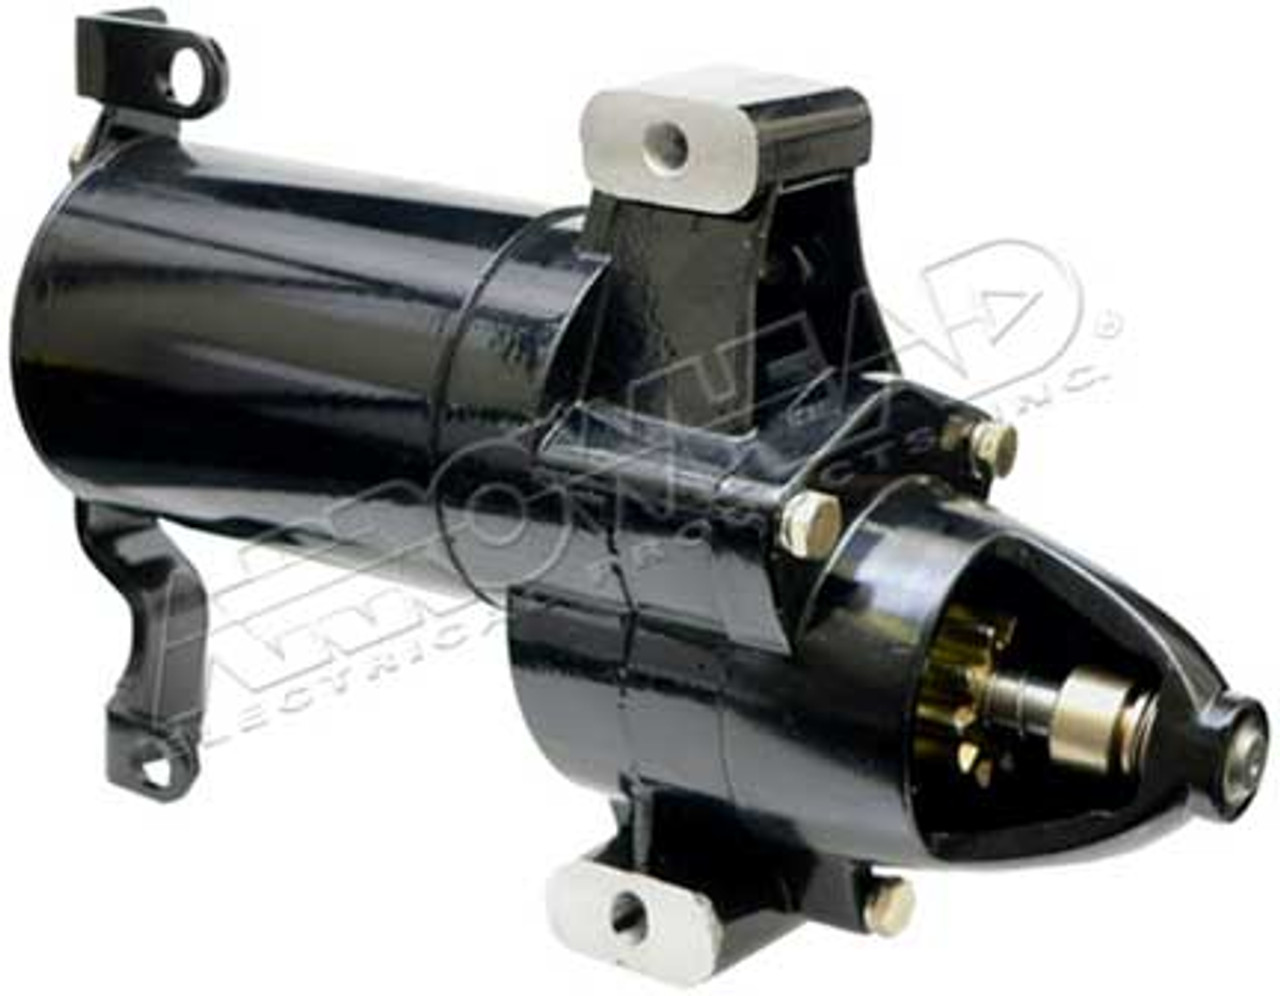 Starter for OMC 12-Volt, CCW, 10-Tooth